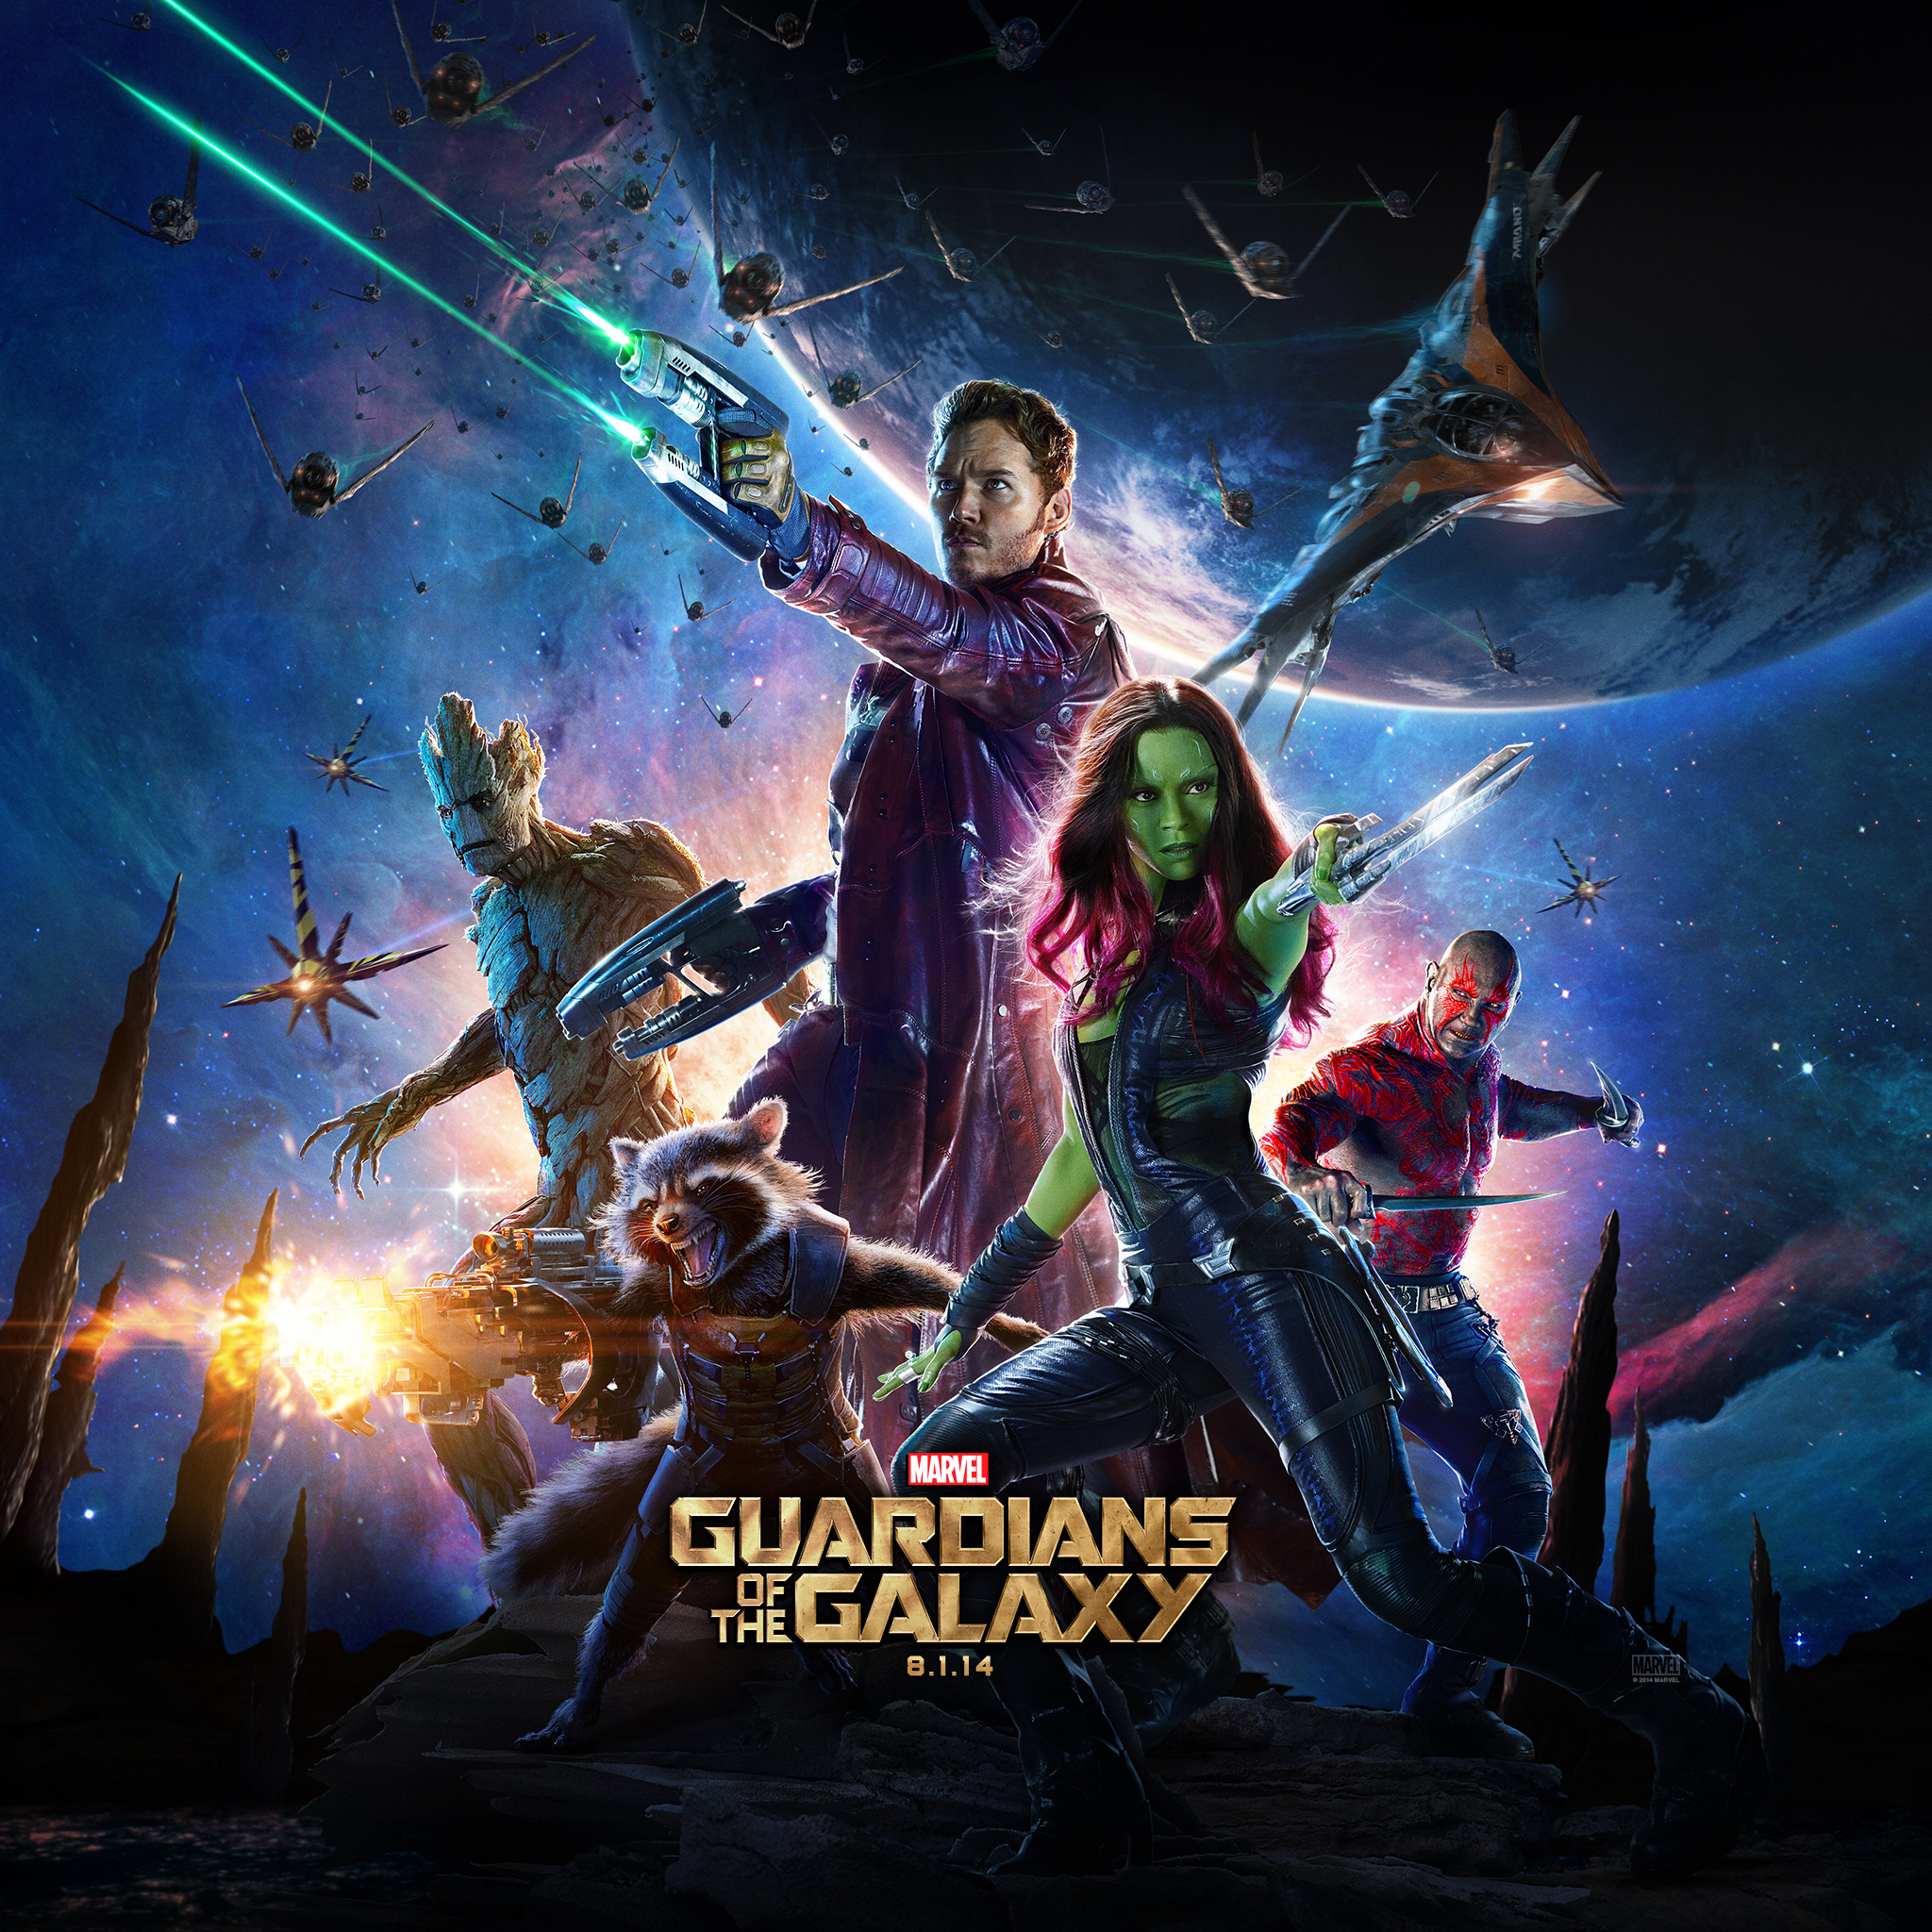 Top Wallpaper Marvel Galaxy - GOTG_Poster  You Should Have_80174.jpg